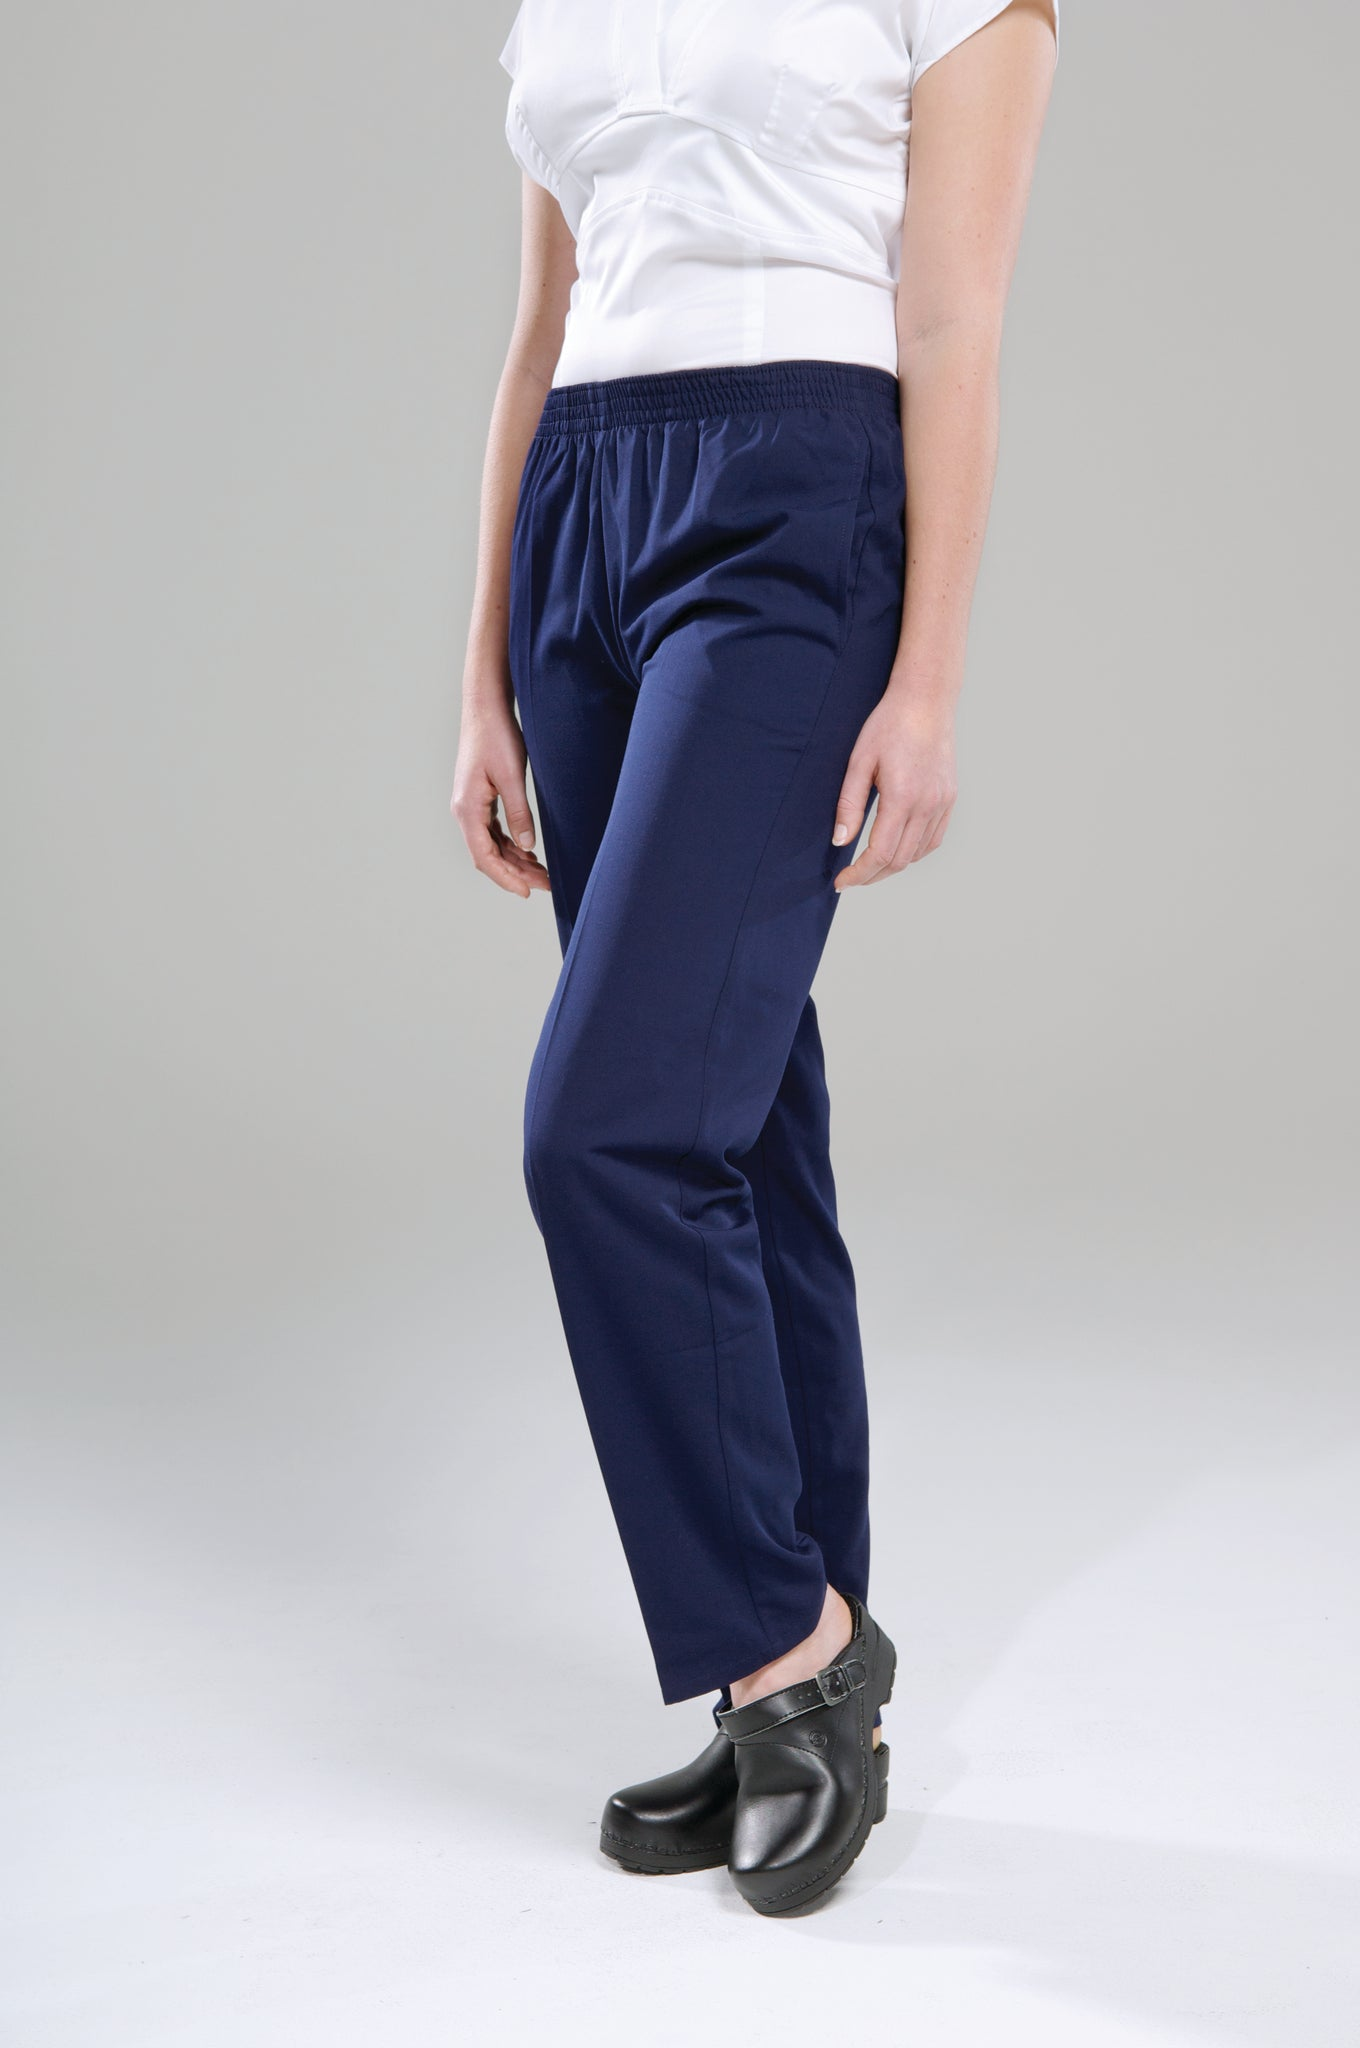 Unisex Pacifica Scrub Pants